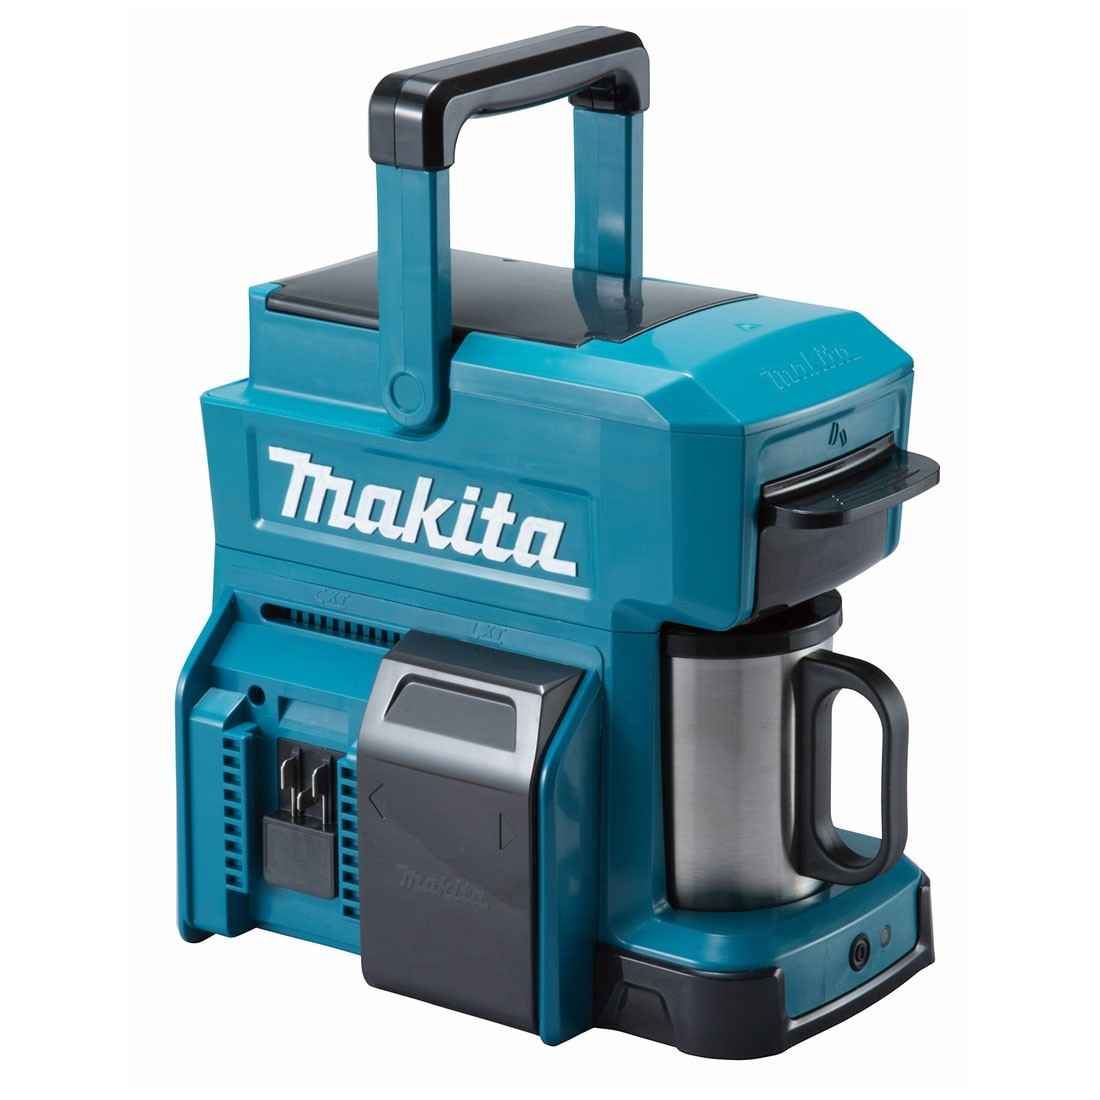 MAKITA 12V / 18V CORDLESS COFFEE MAKER - DCM501 - BODY ONLY